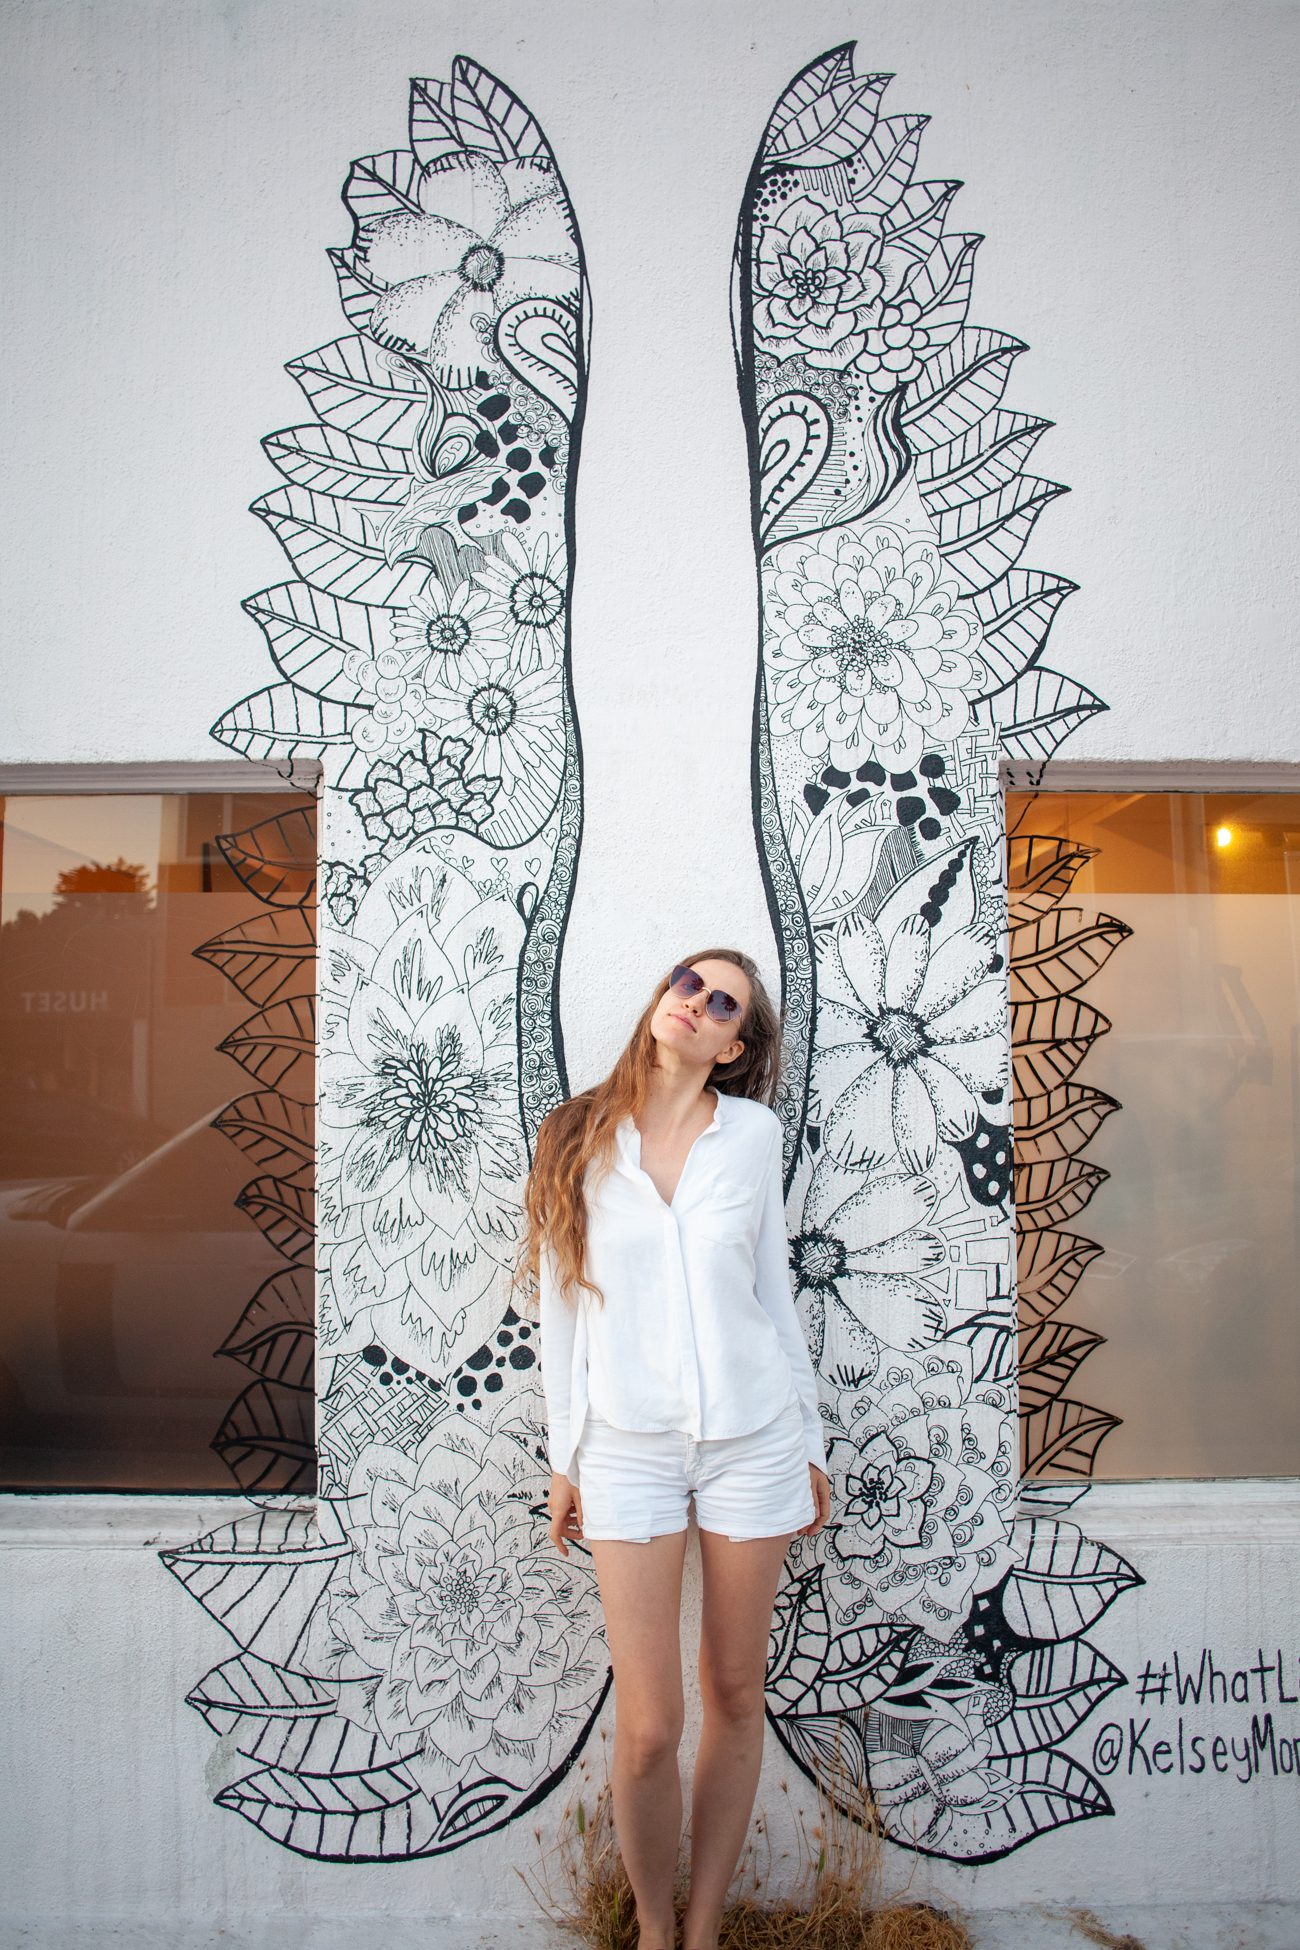 Fig. 18 This is me  doing something that trends  on Abbot Kinney #WhatLiftsYou mural by  Kelsey Montague